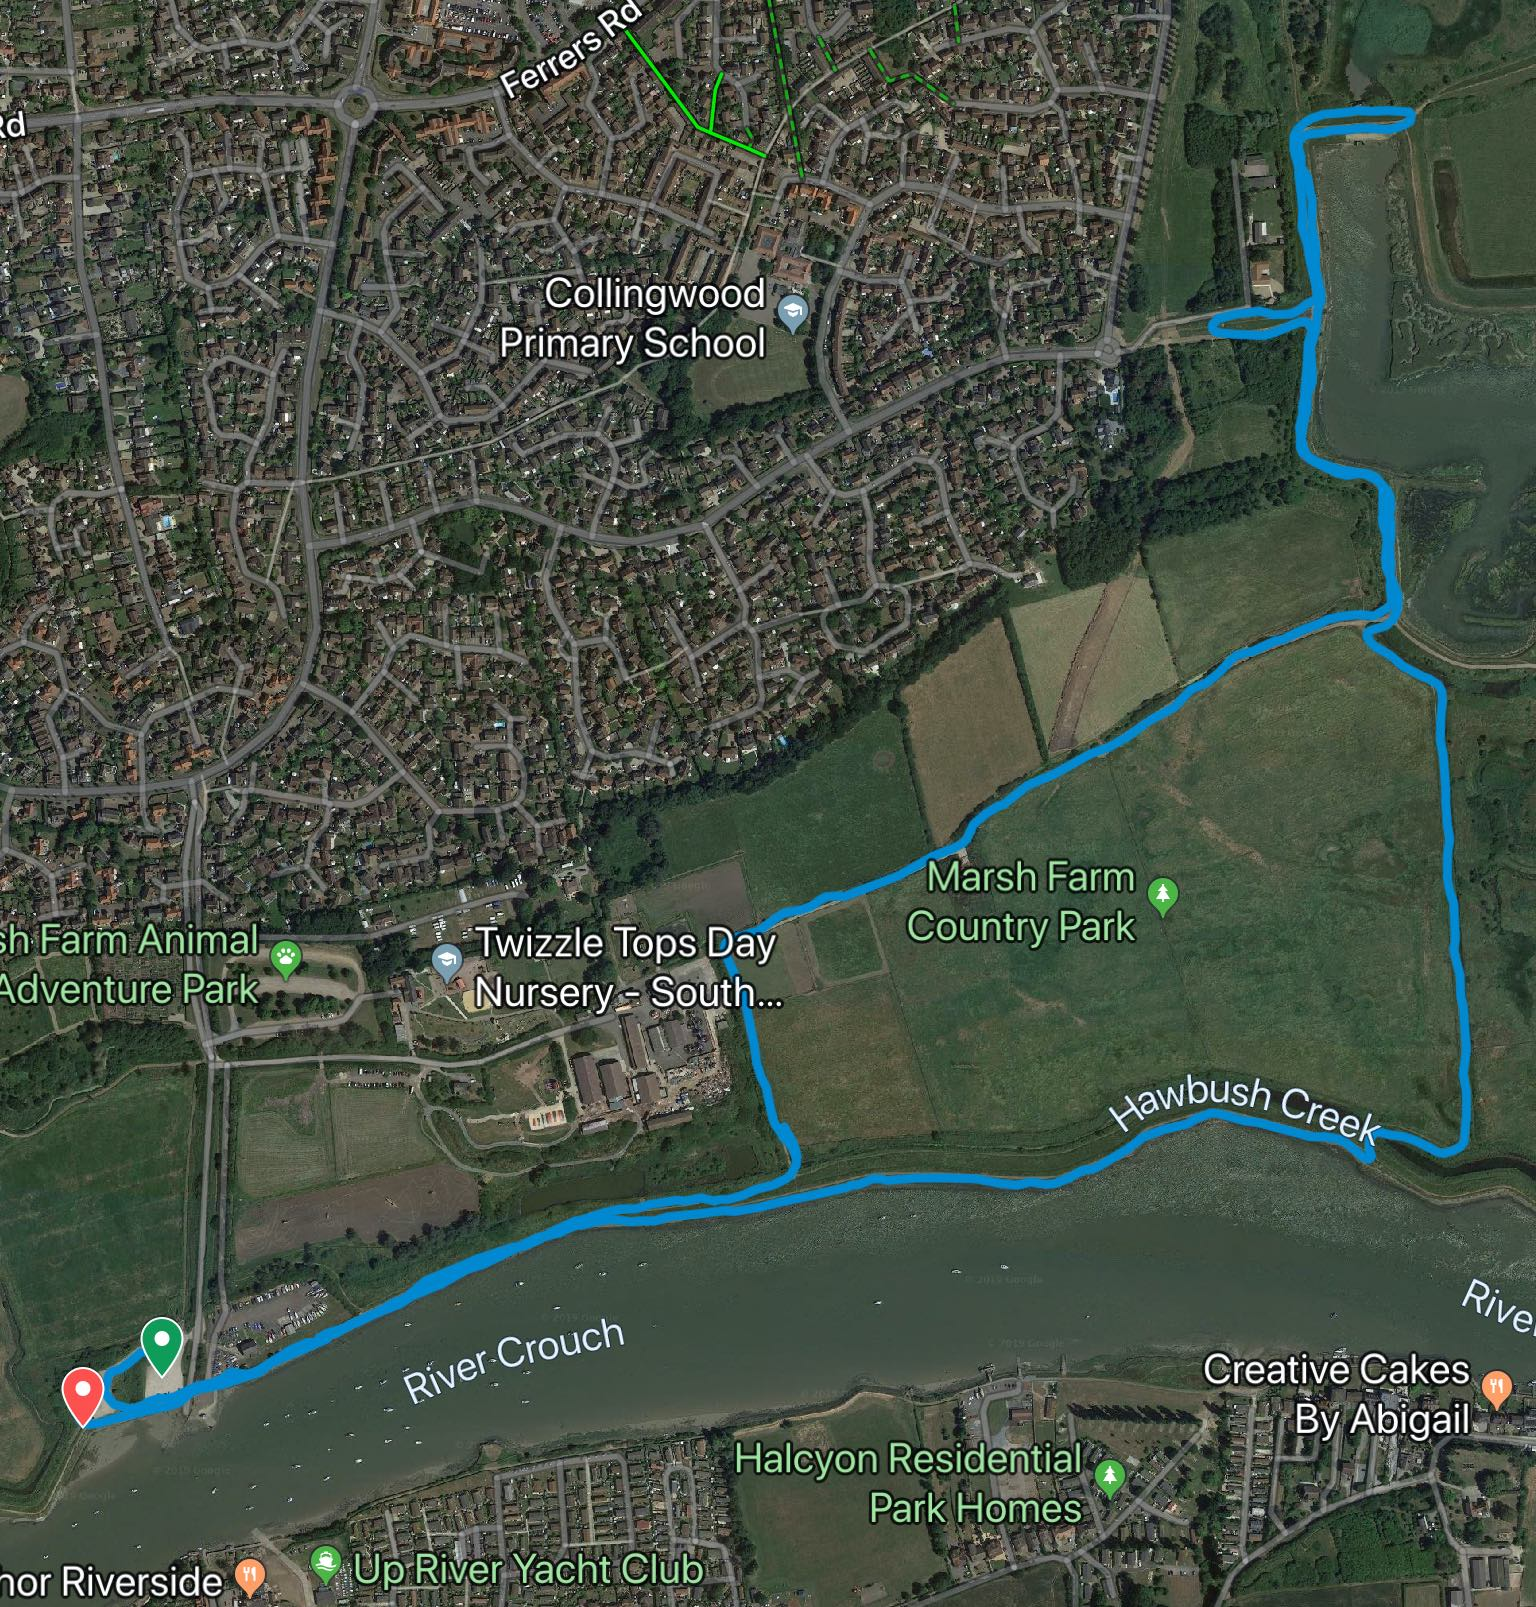 South Woodham Ferrers course map